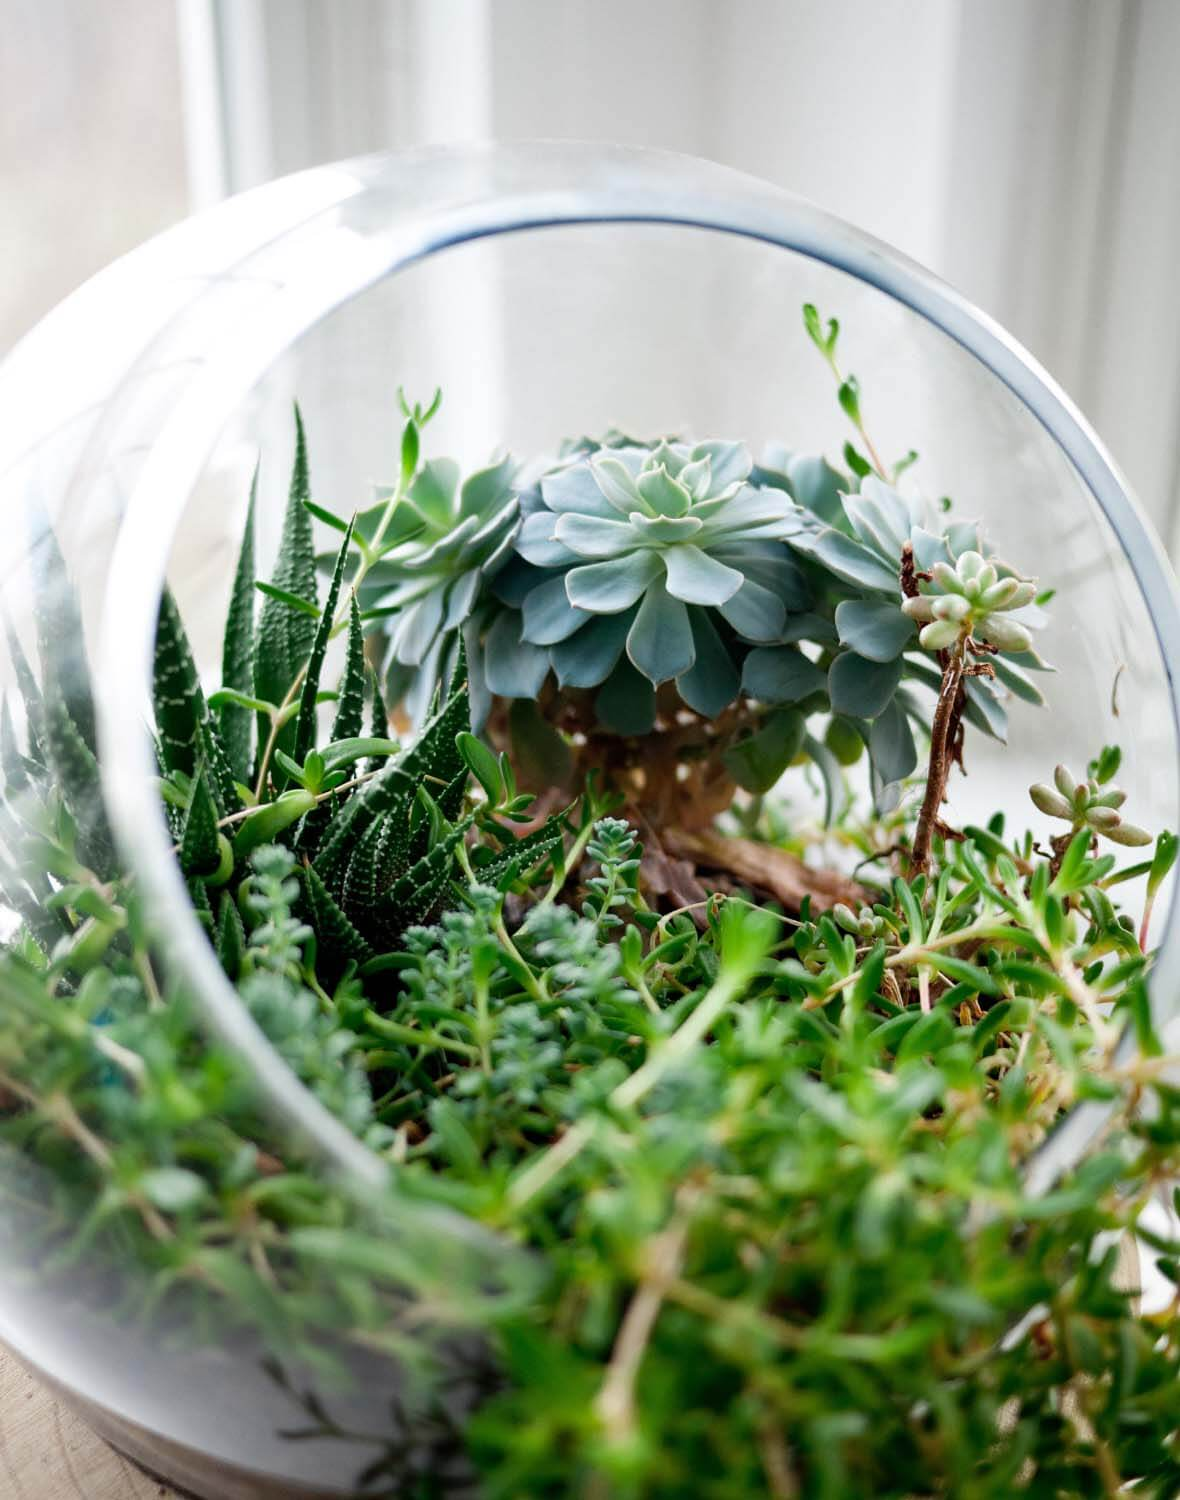 siteassets/img/article/inspiration/plants/plant_3.jpg